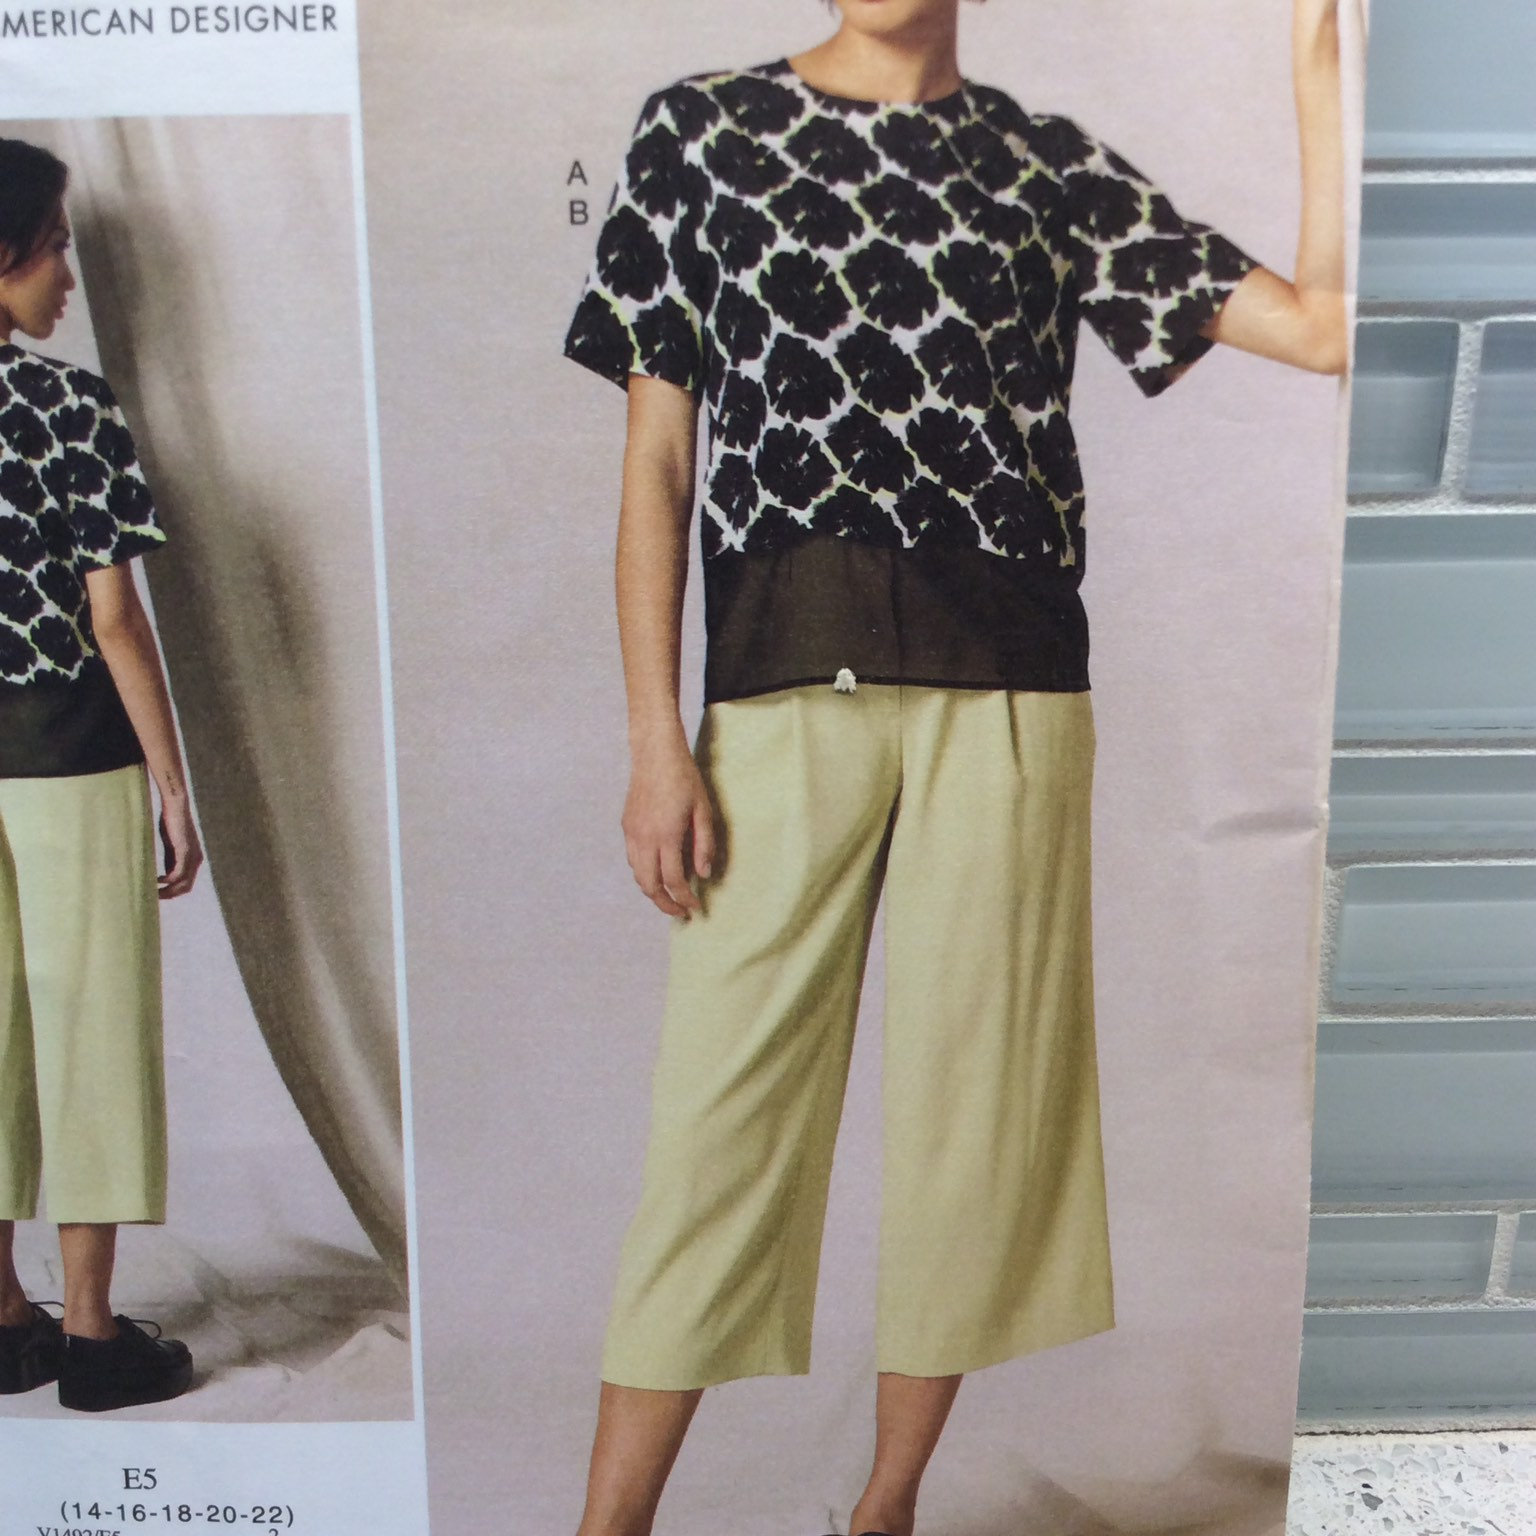 Vogue Sewing Pattern DKNY Donna Karan V1492 E5 14 16 18 20 22 Loose Fitted Top a image 3